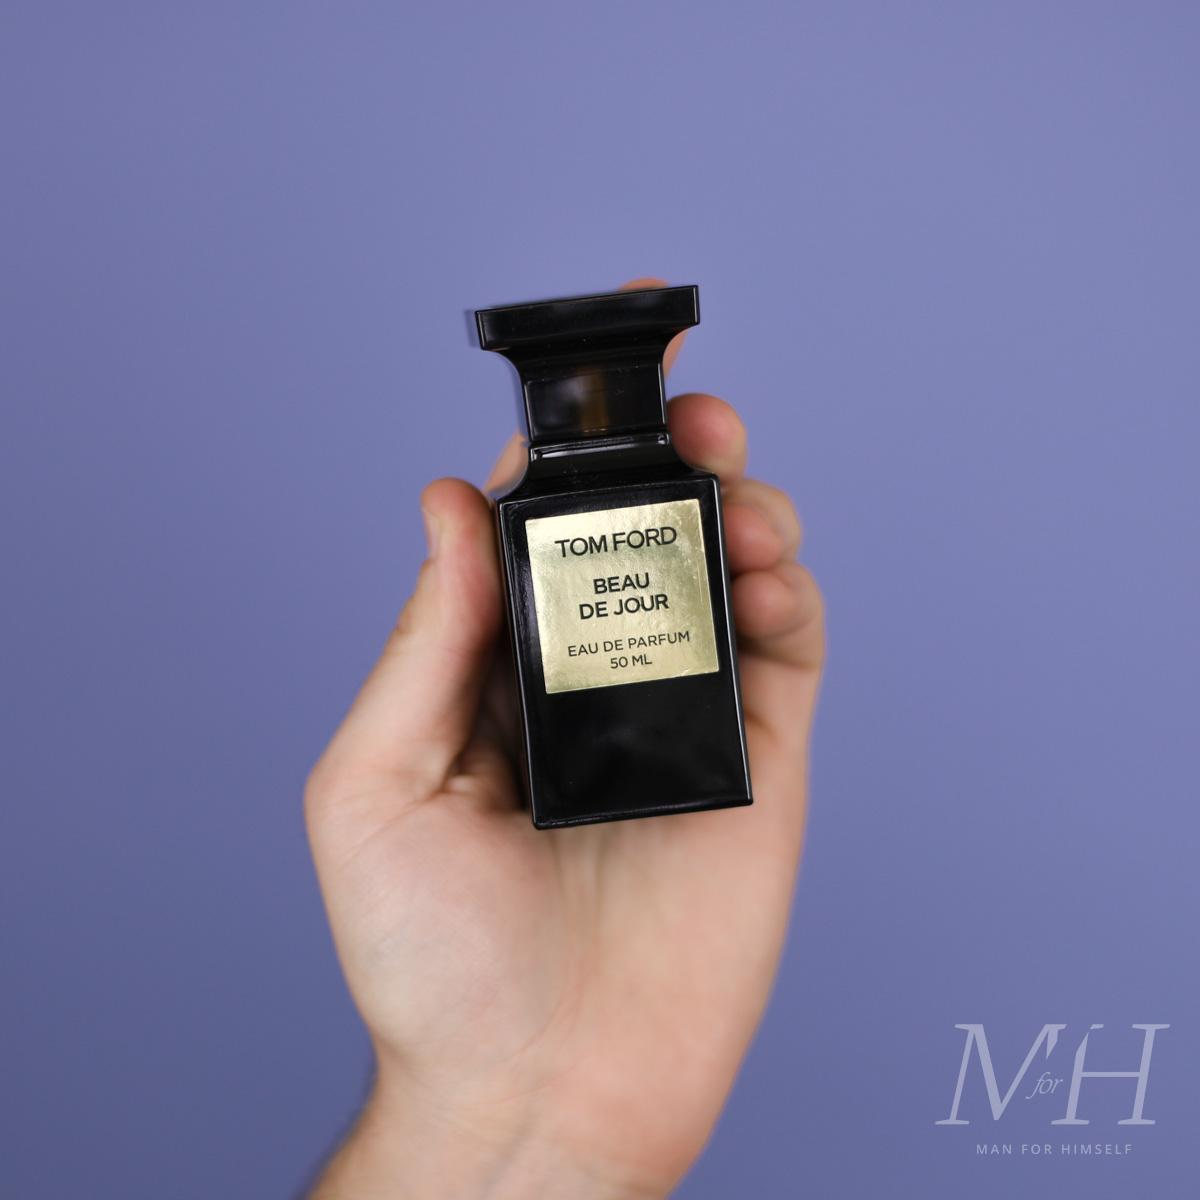 beau-de-jour-tom-ford-product-review-man-for-himself